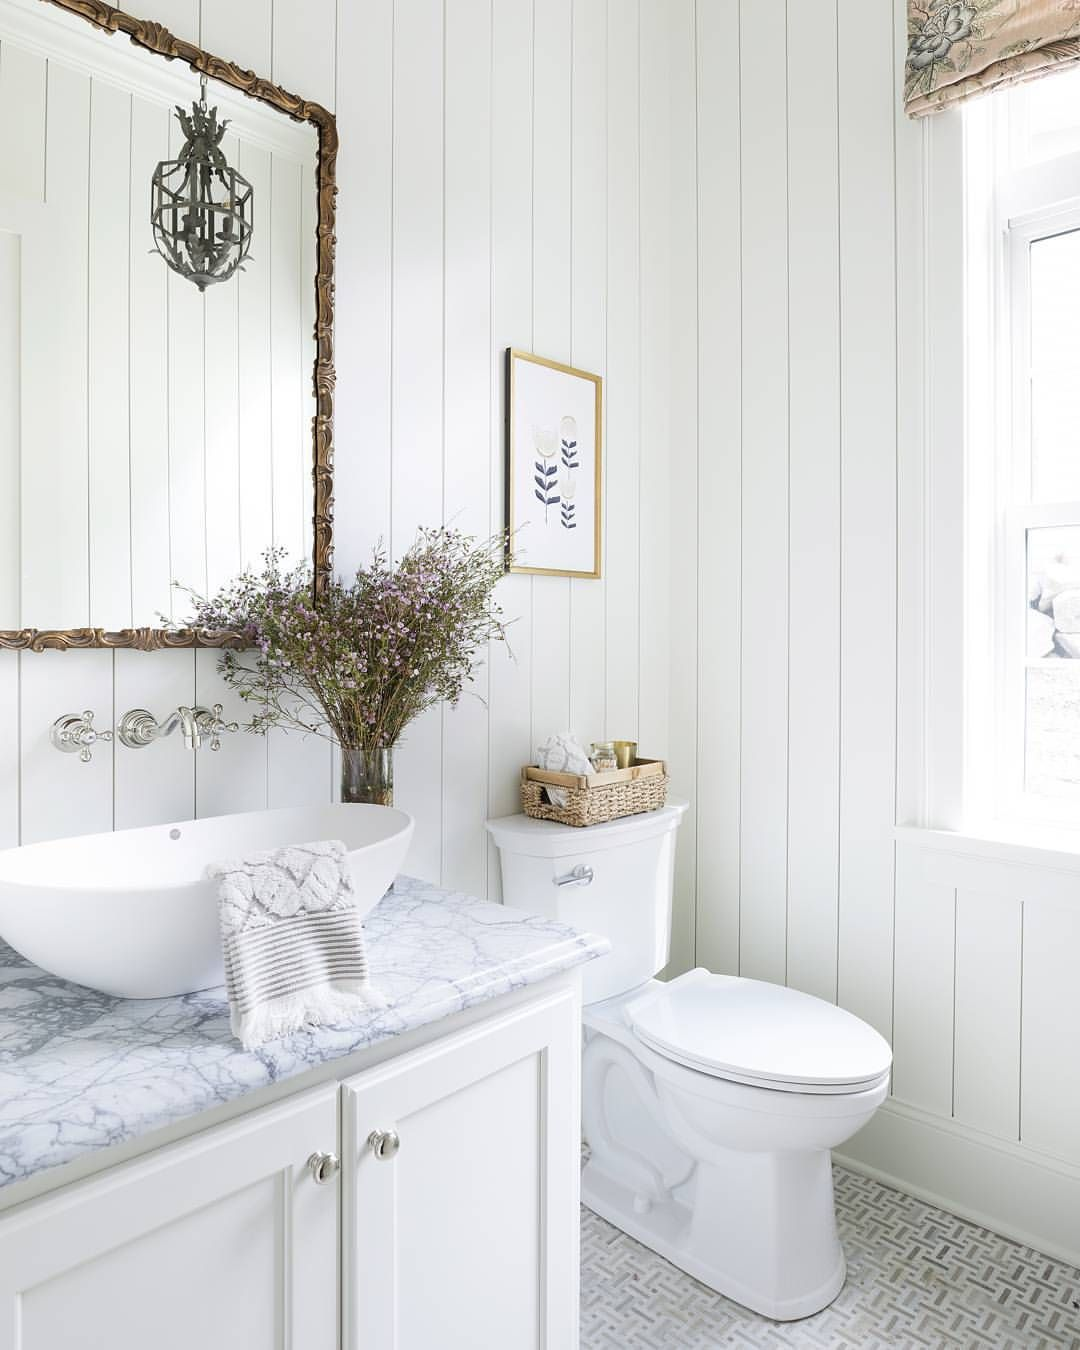 Vertical Shiplap Walls Bathroom: Pin By Michelle Allan On For The Home